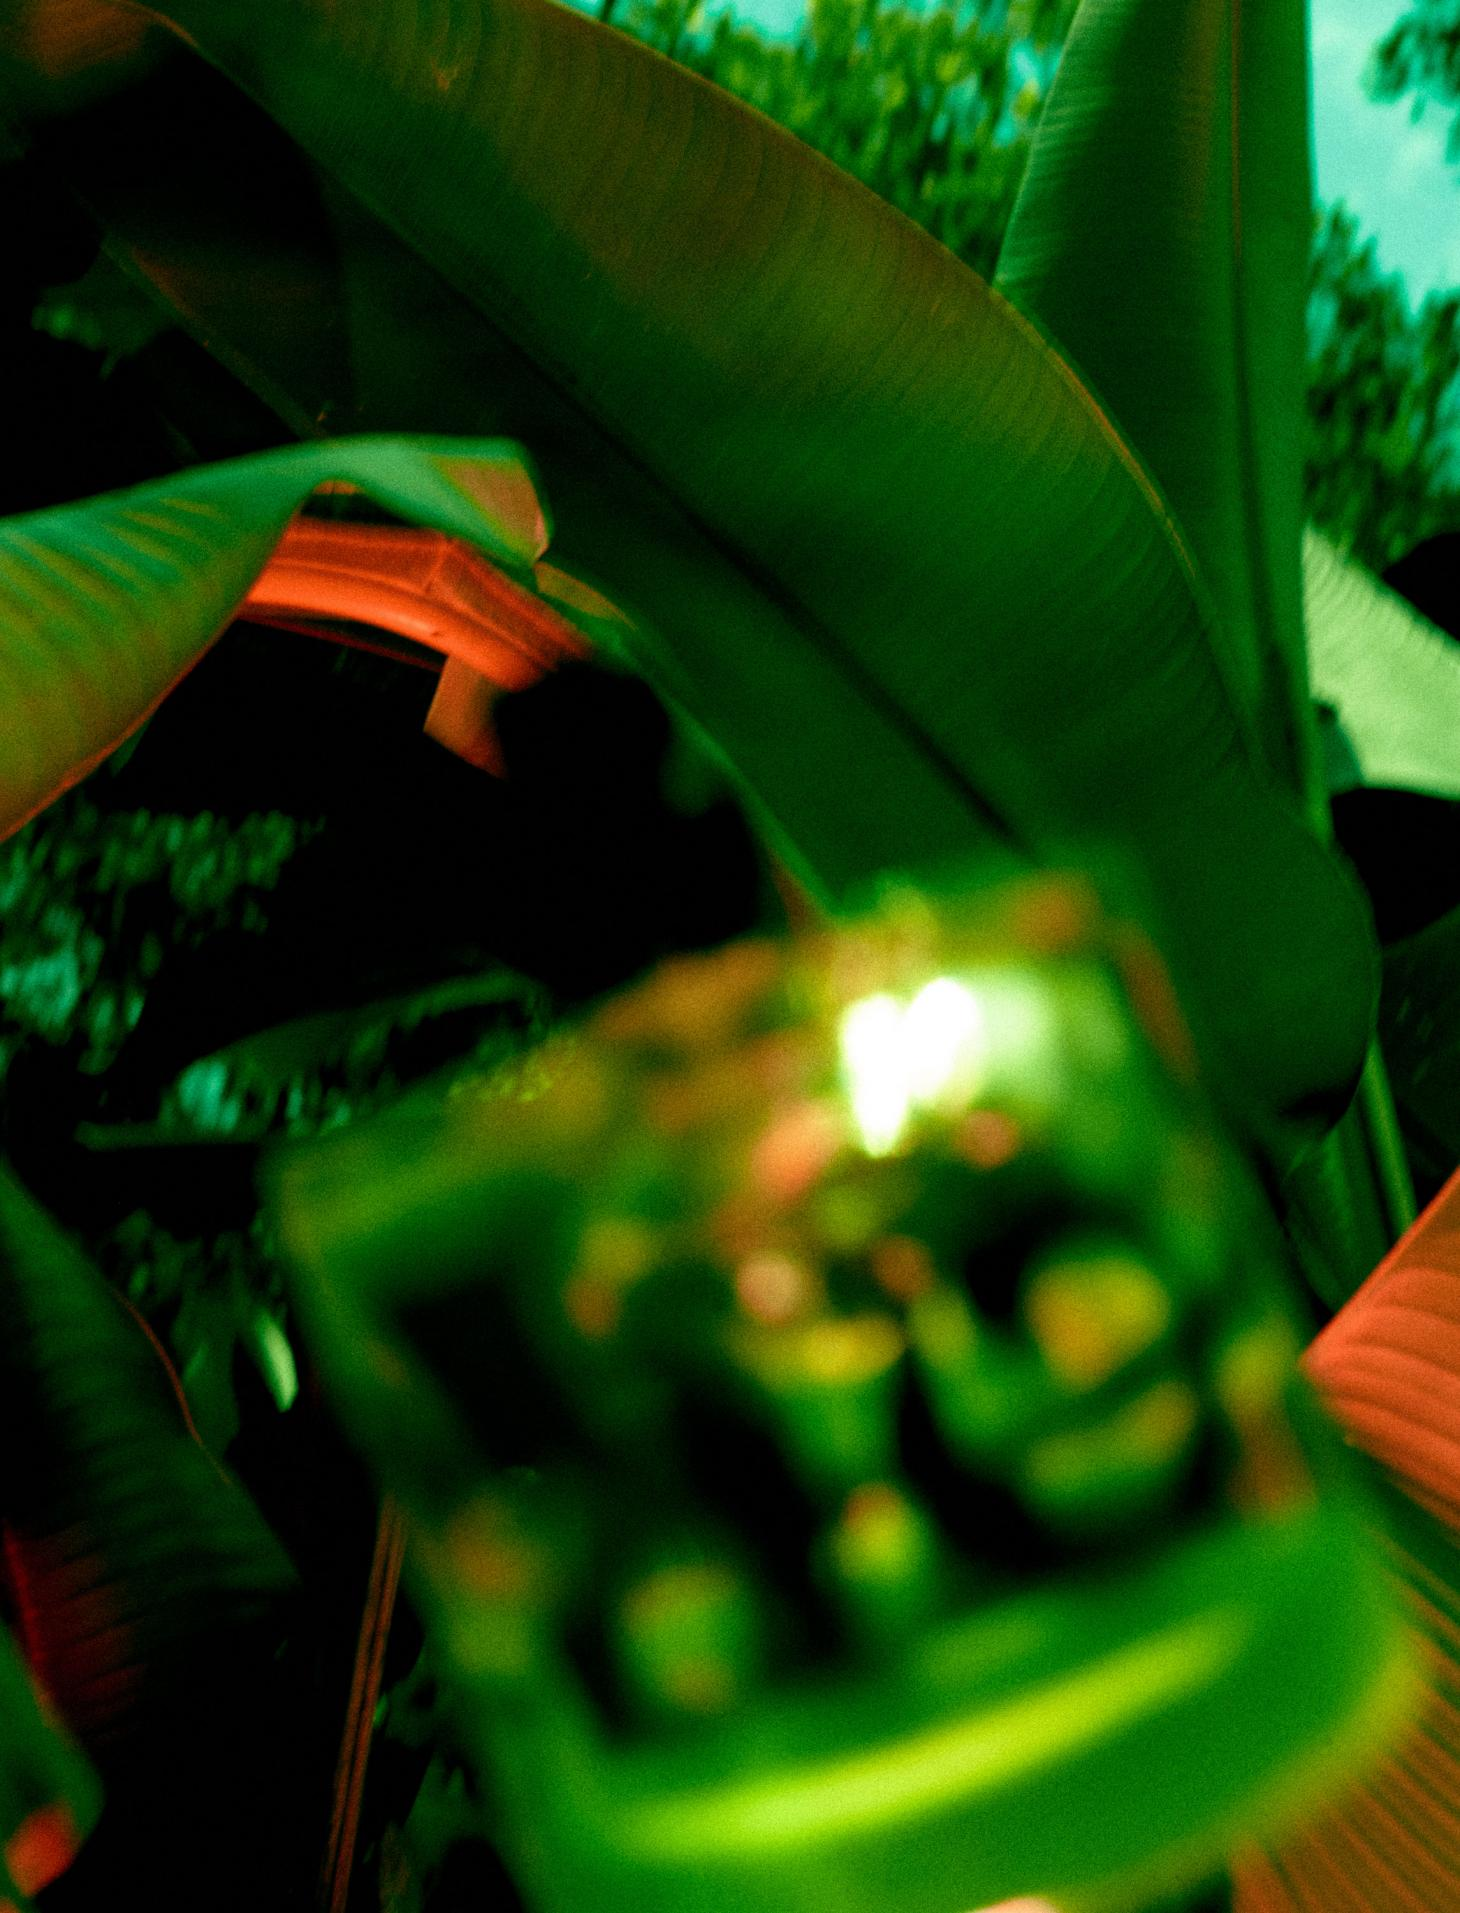 Photographby Lea Colombo fromVyrao's I Am Verdent campaignshowing perfume bottle amongst green leaves